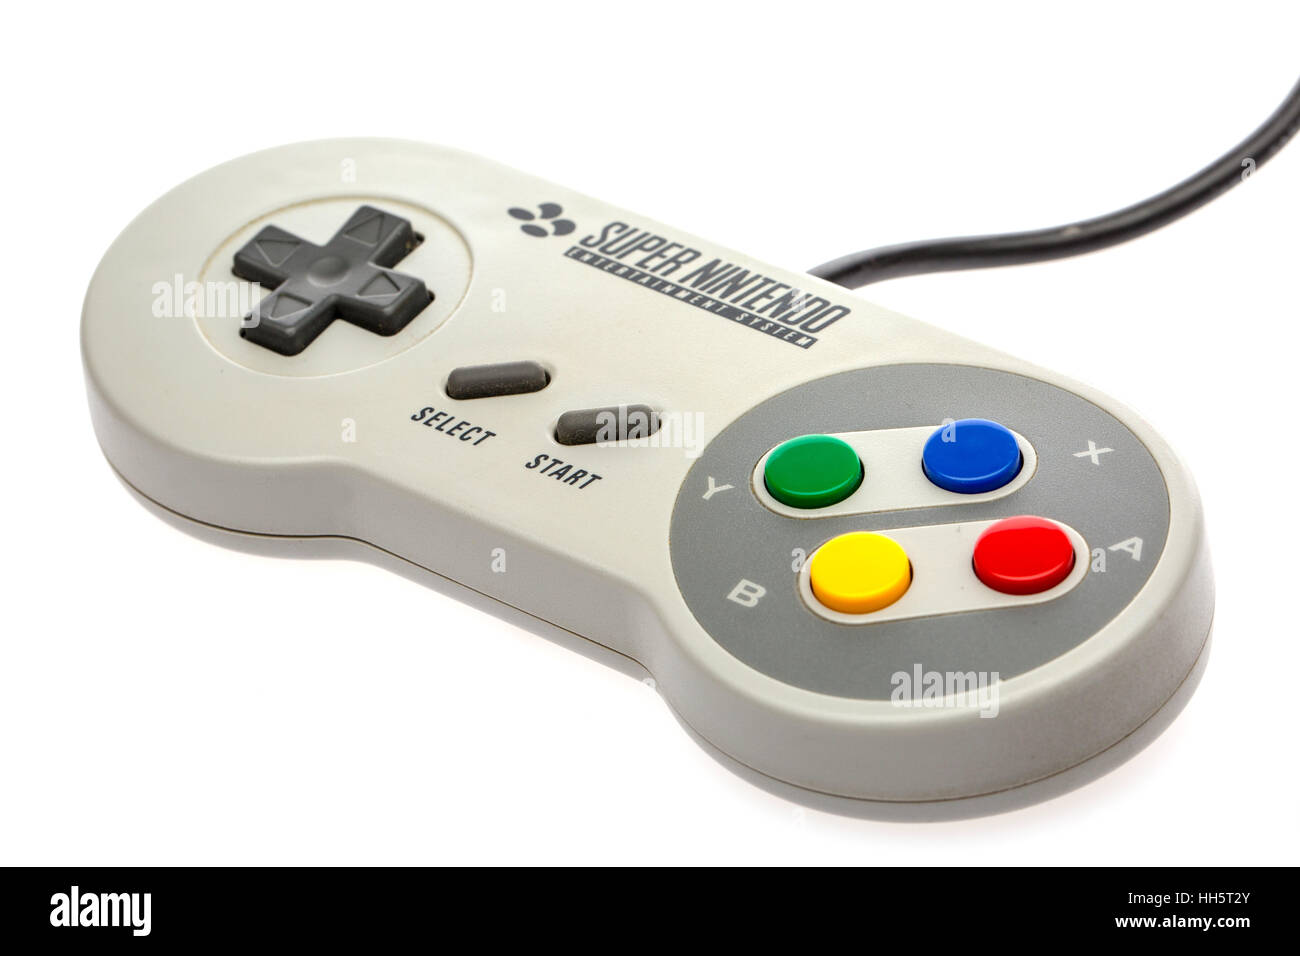 Super Nintendo Computer Game controller from the 1990's - Stock Image